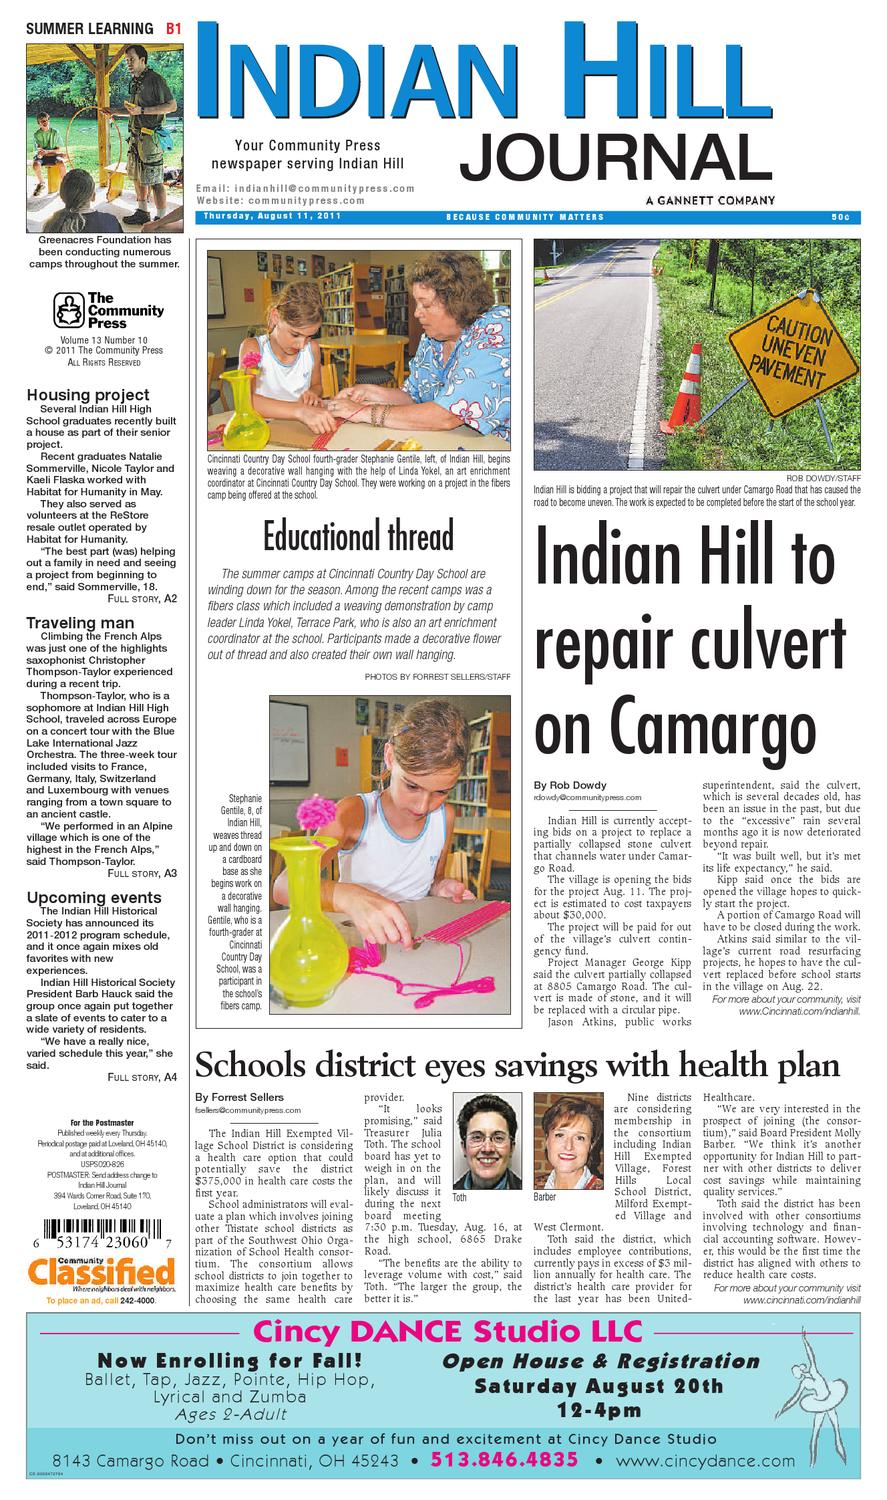 47ab99a85e5de4 indian-hill-journal-081011 by Enquirer Media - issuu